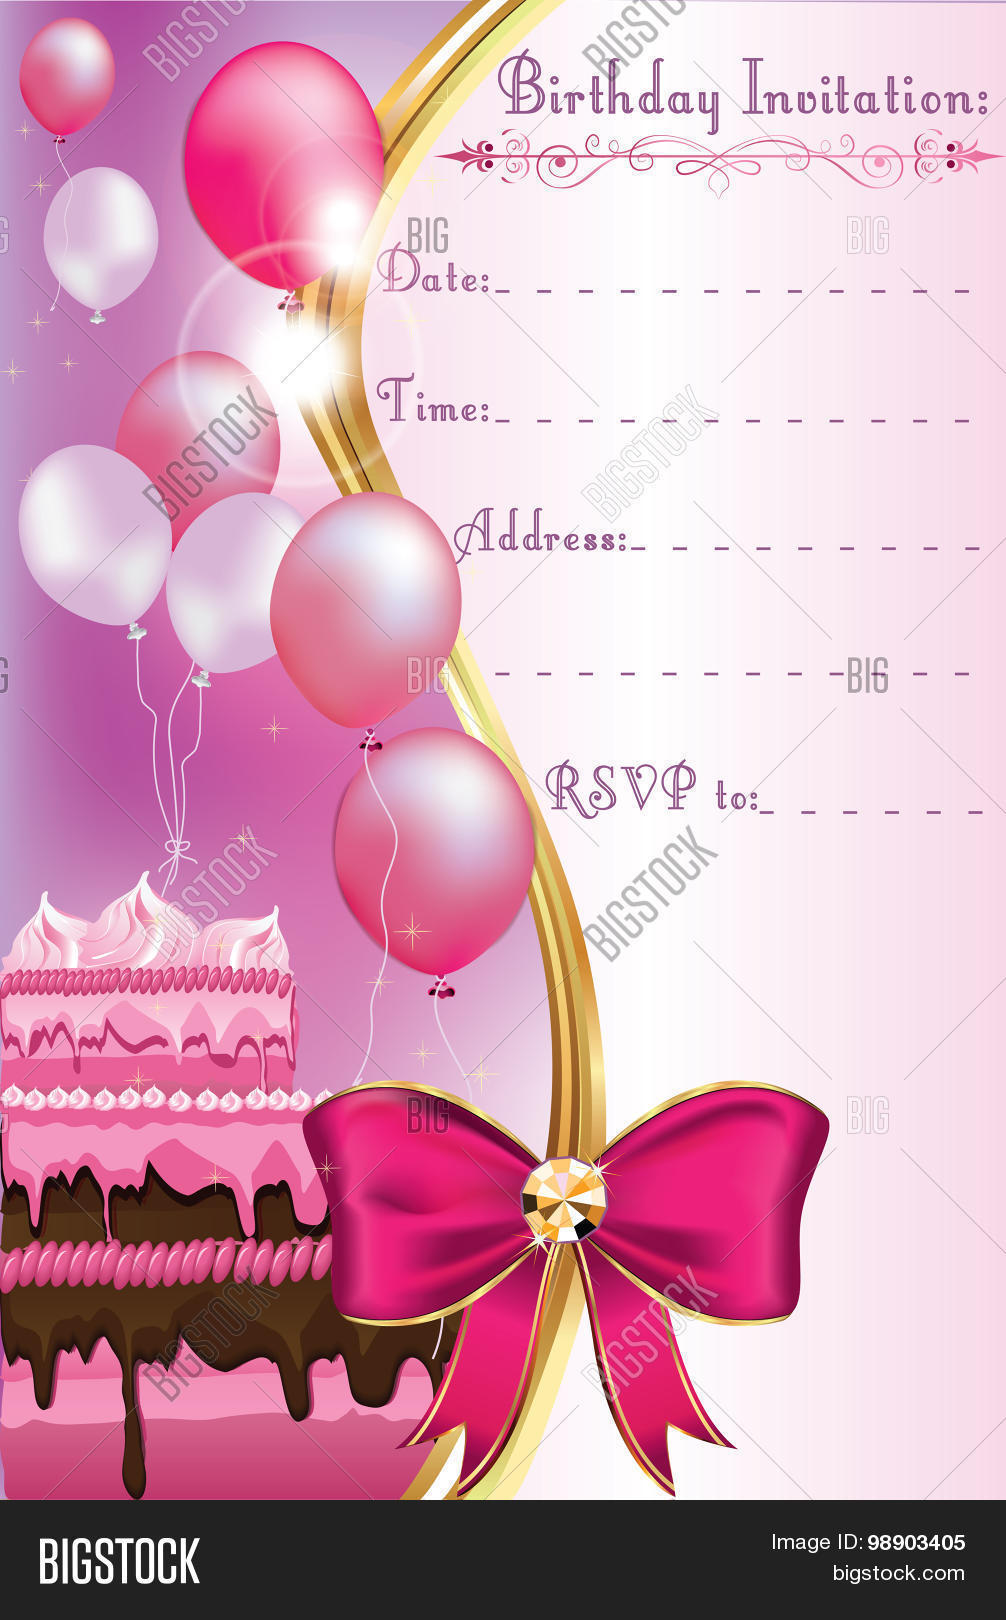 Birthday Invitation Vector Photo Free Trial Bigstock